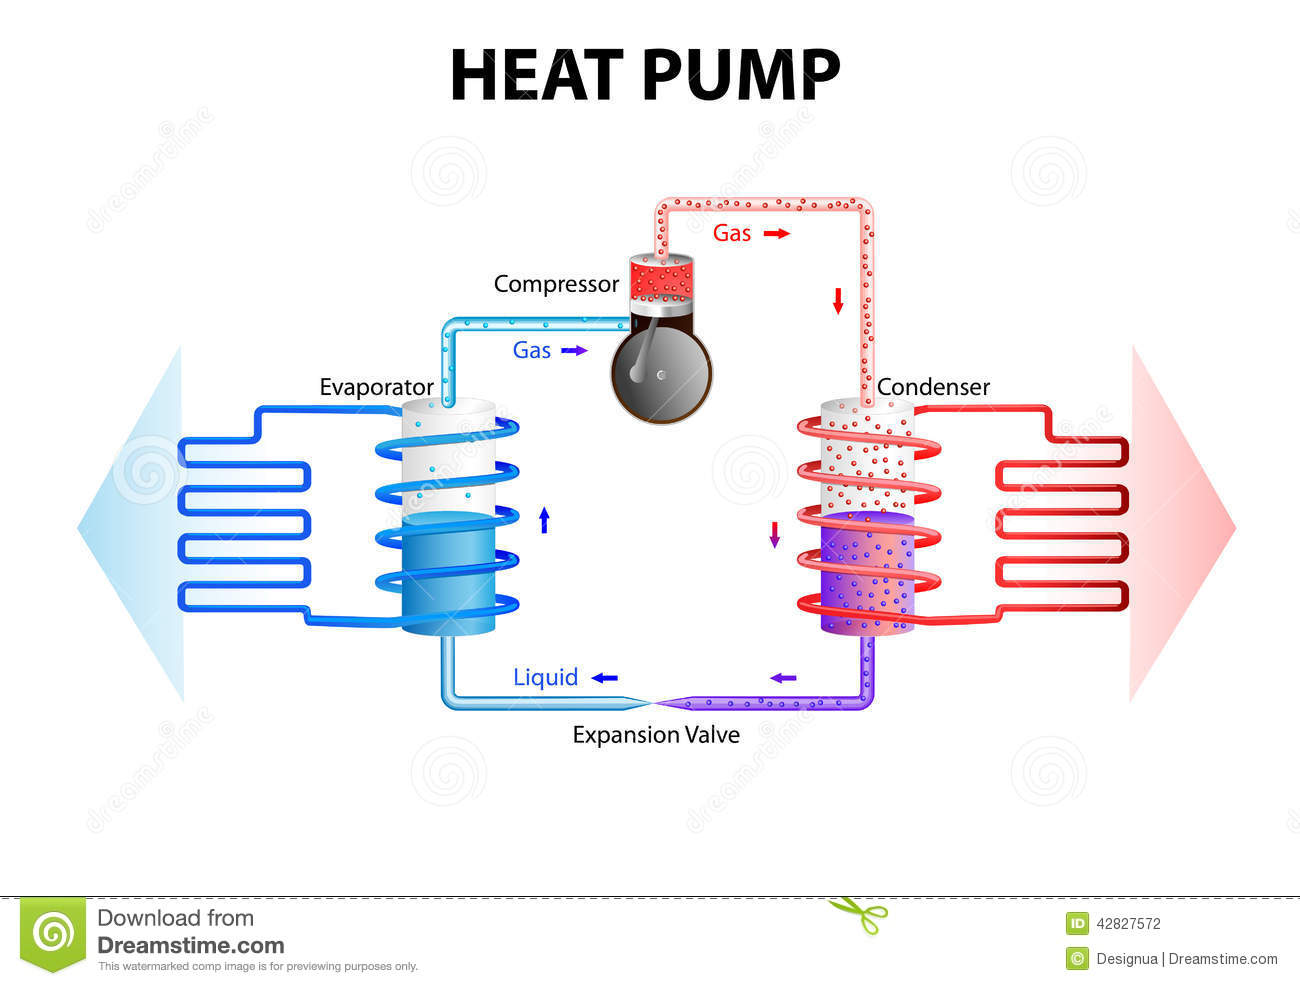 heat pump cooling system works extracting energy stored ground water converts building heating pumps 42827572 how a air conditioner works grihon com ac, coolers & devices how does air conditioning work diagram at couponss.co